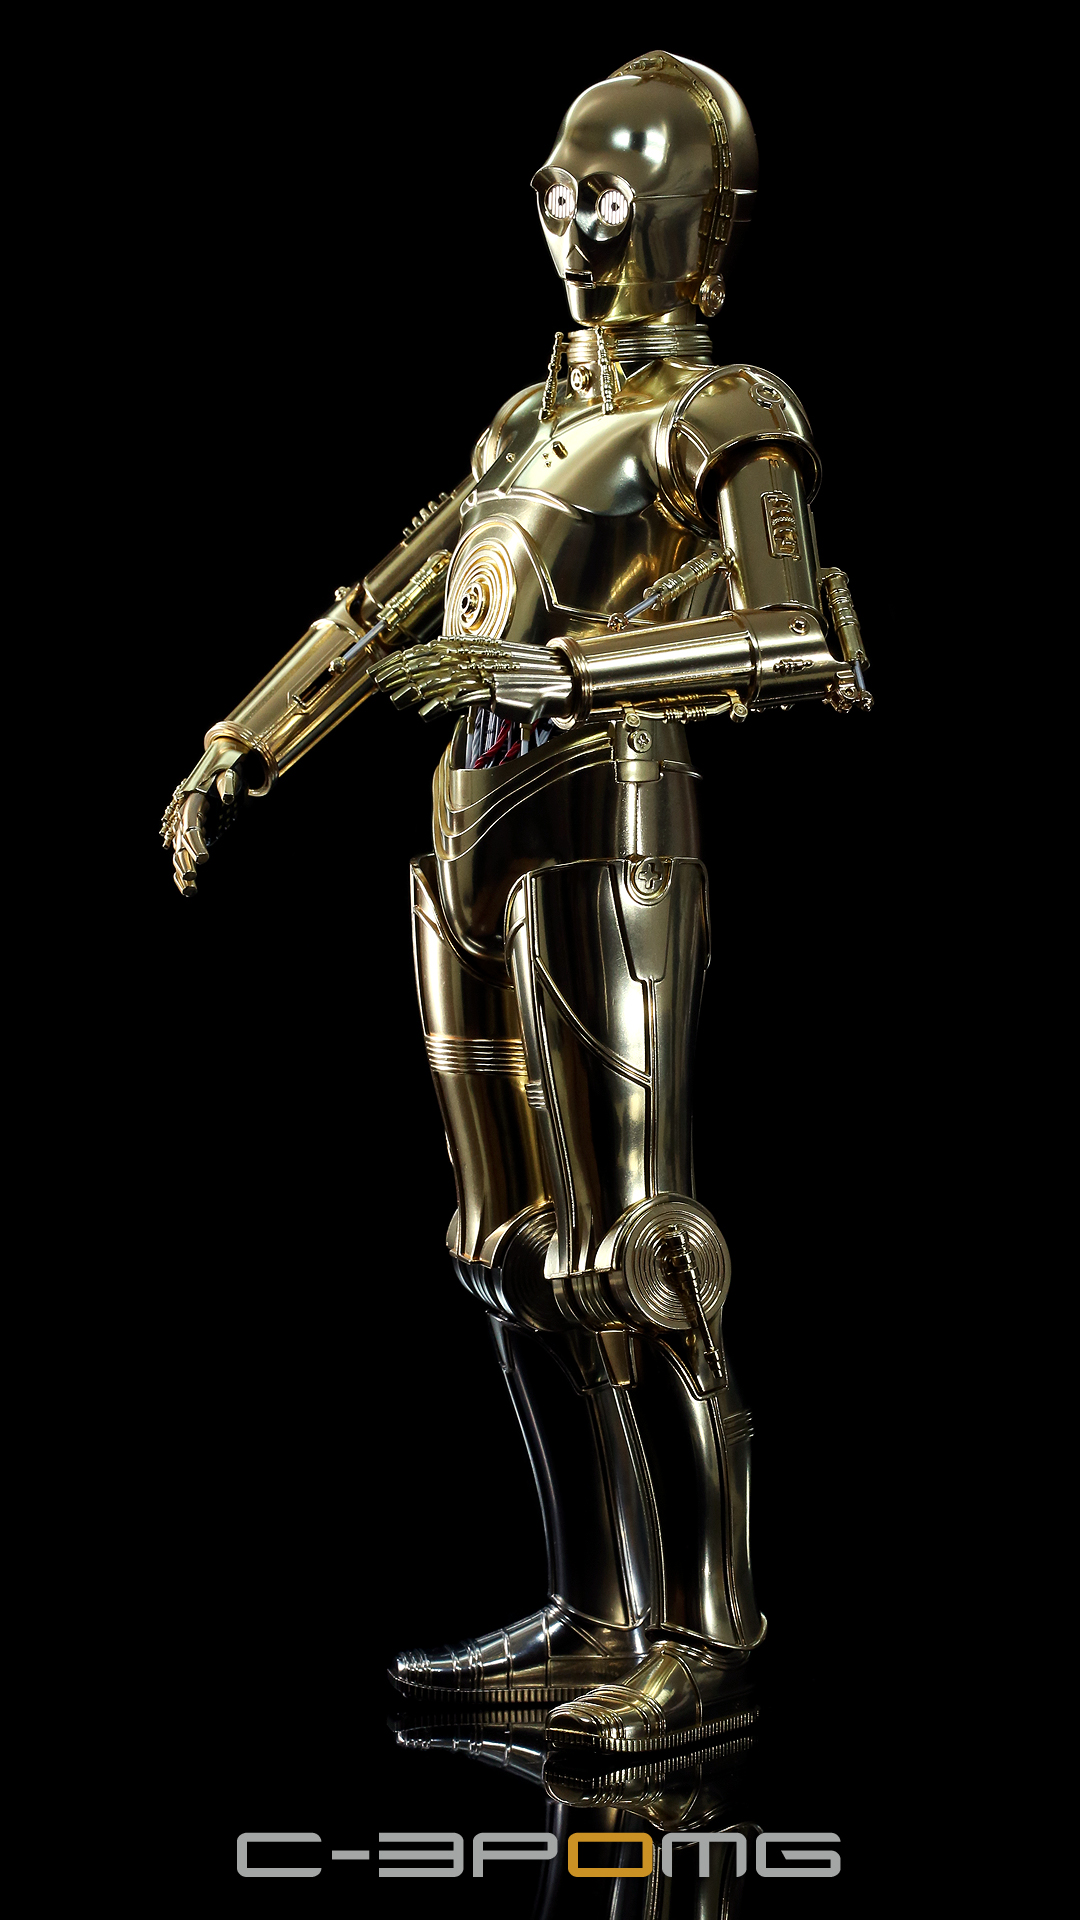 [Bandai] Star Wars: C-3PO - Perfect Model 1/6 scale - LANÇADO!!! - Página 2 C-3PO1028_zpsbe5bbb3a